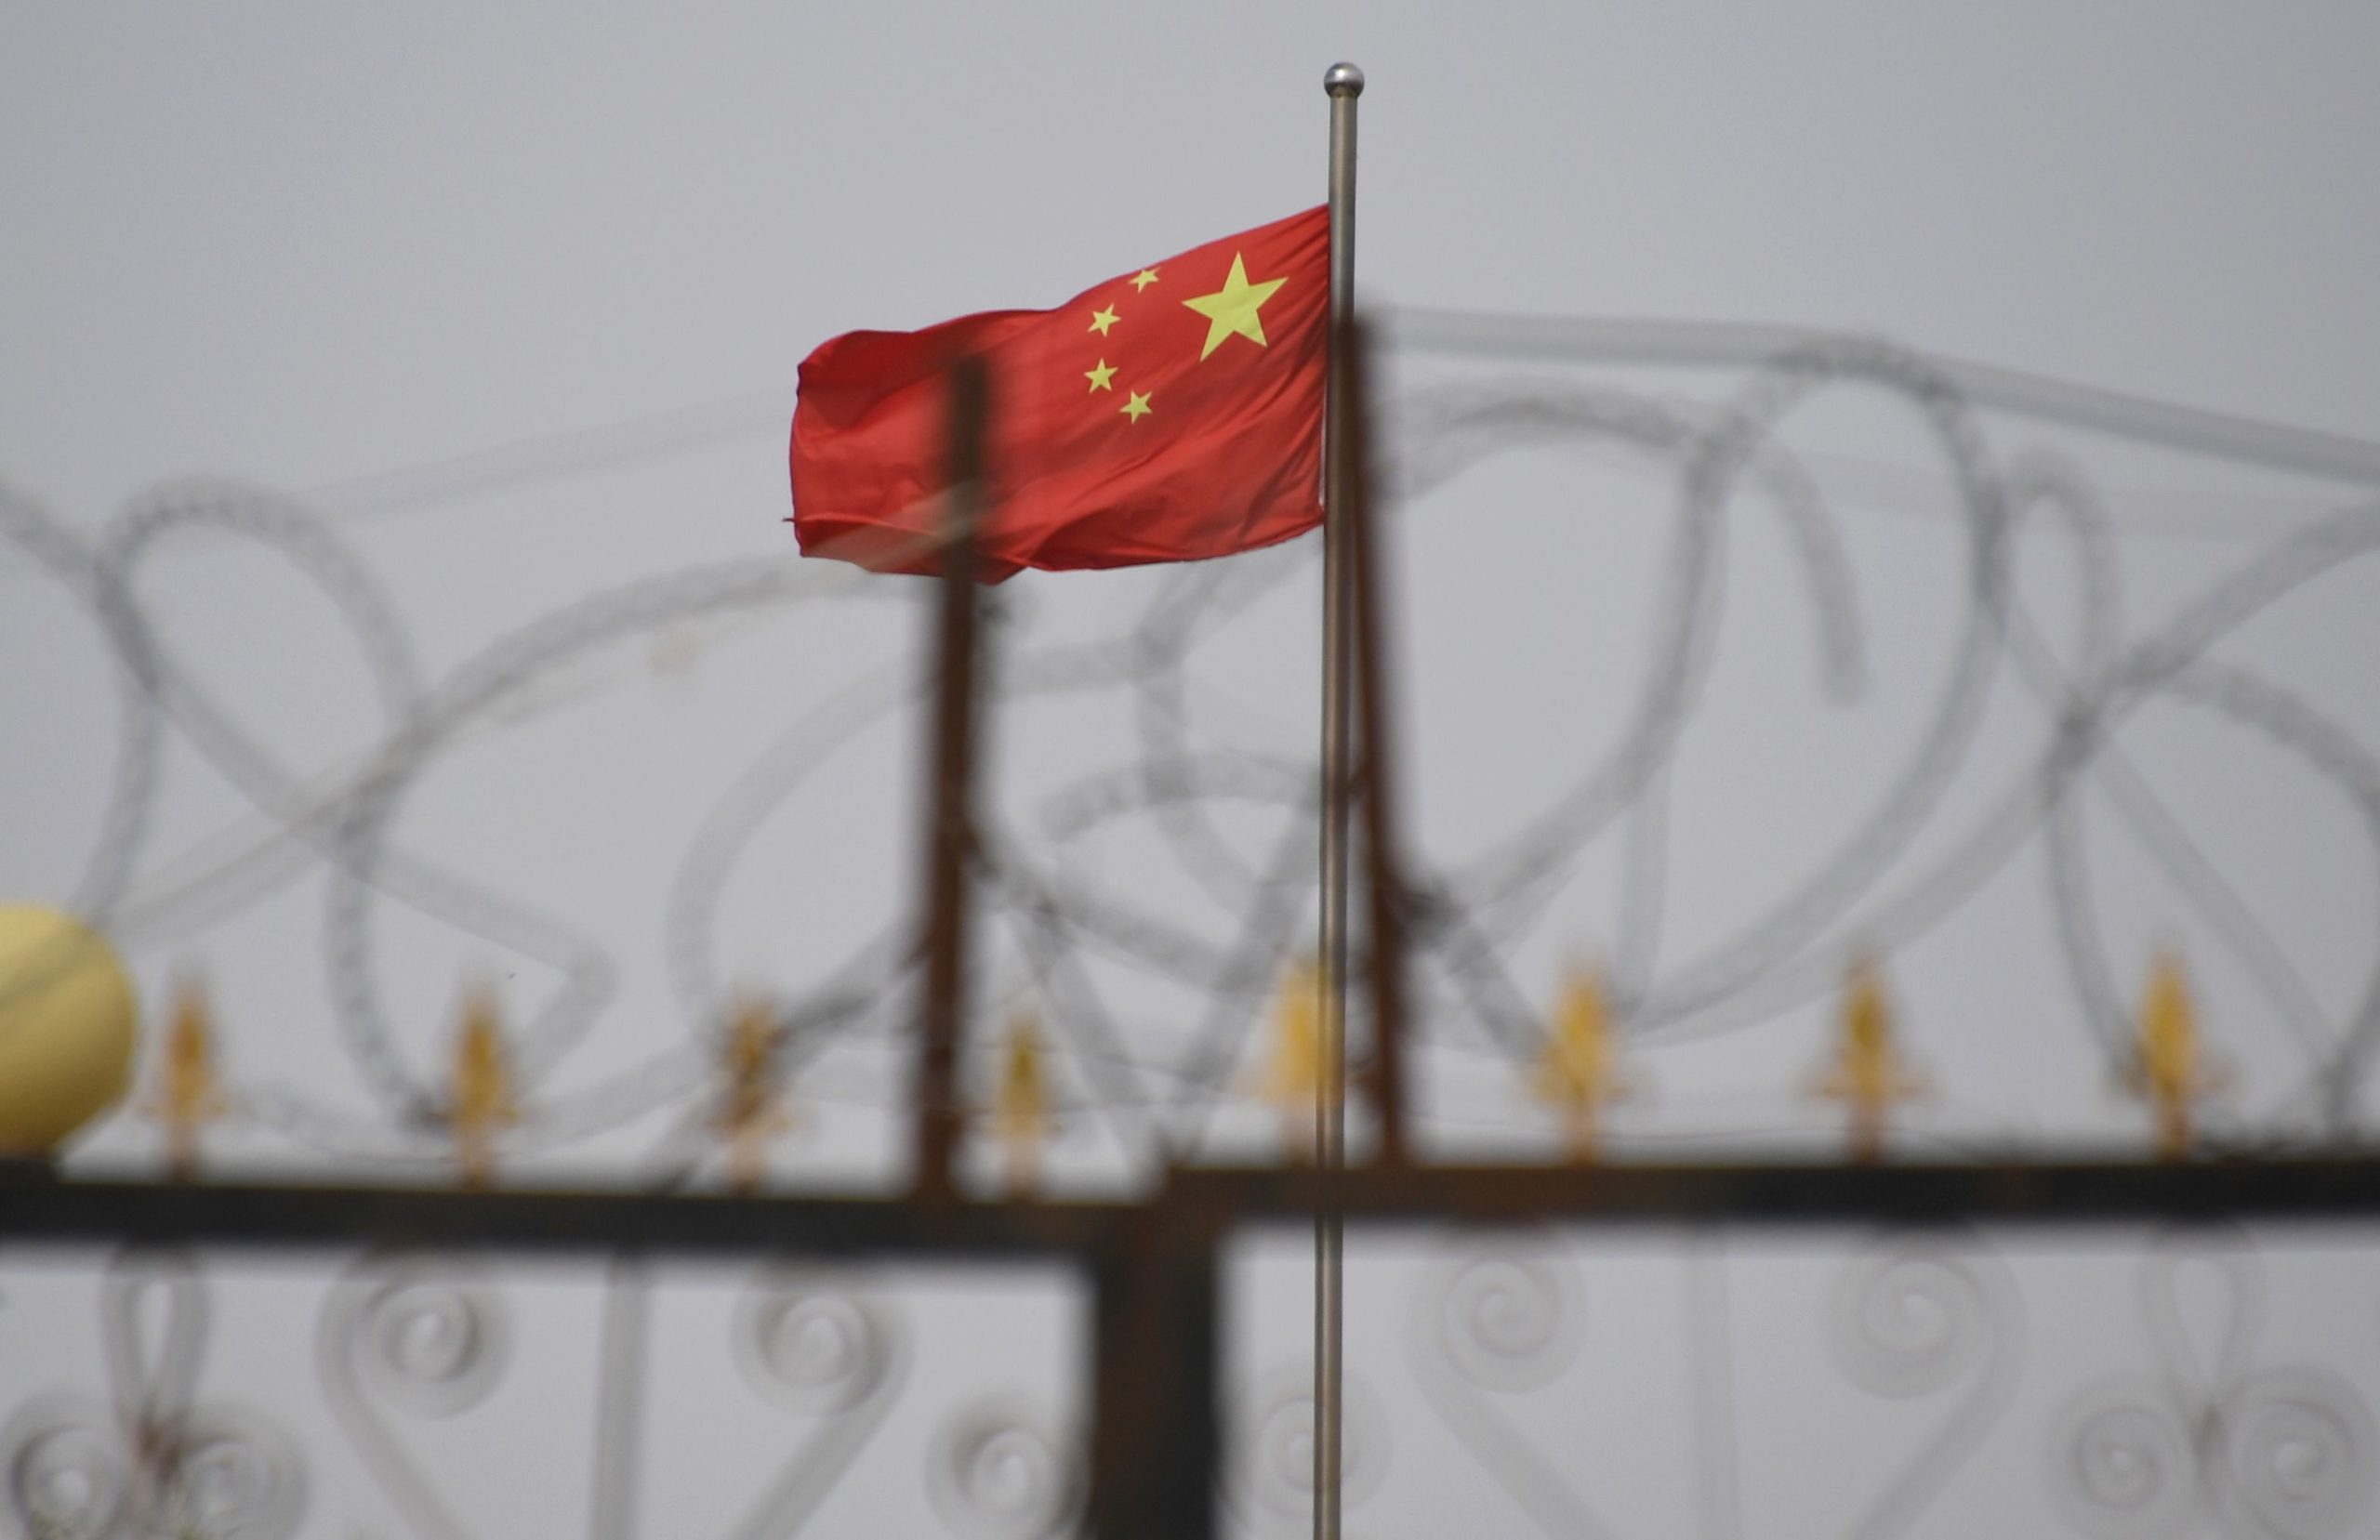 TOPSHOT - This photo taken on June 4, 2019 shows the Chinese flag behind razor wire at a housing compound in Yangisar, south of Kashgar, in China's western Xinjiang region. - A recurrence of the Urumqi riots which left nearly 200 people dead a decade ago is hard to imagine in today's Xinjiang, a Chinese region whose Uighur minority is straitjacketed by surveillance and mass detentions. A pervasive security apparatus has subdued the ethnic unrest that has long plagued the region. (Photo by GREG BAKER / AFP) (Photo by GREG BAKER/AFP via Getty Images)